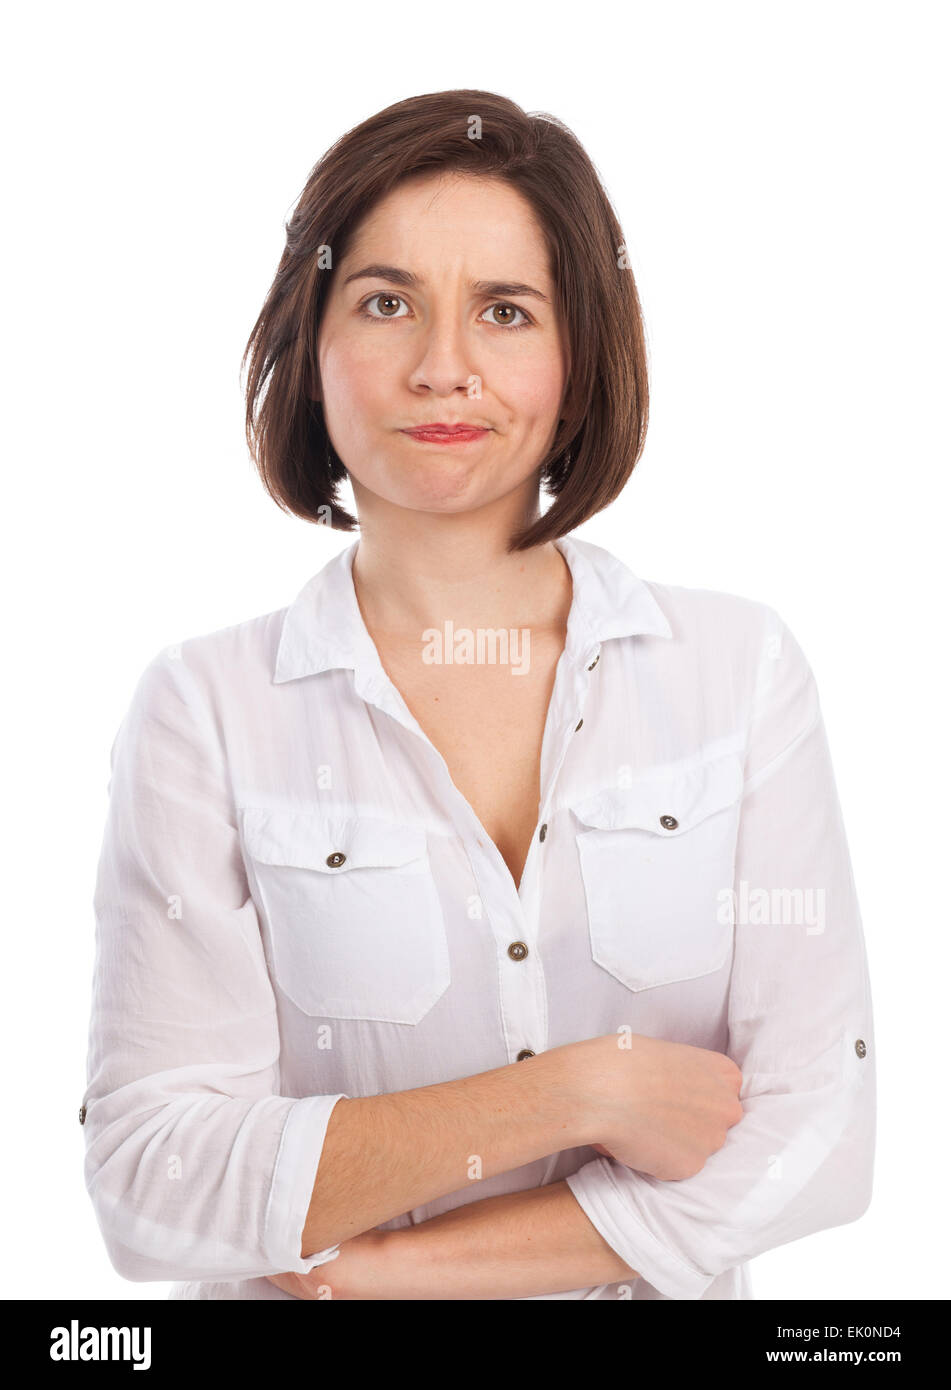 Portrait of a young woman looking discontented, wondering, indecisive, isolated on white - Stock Image